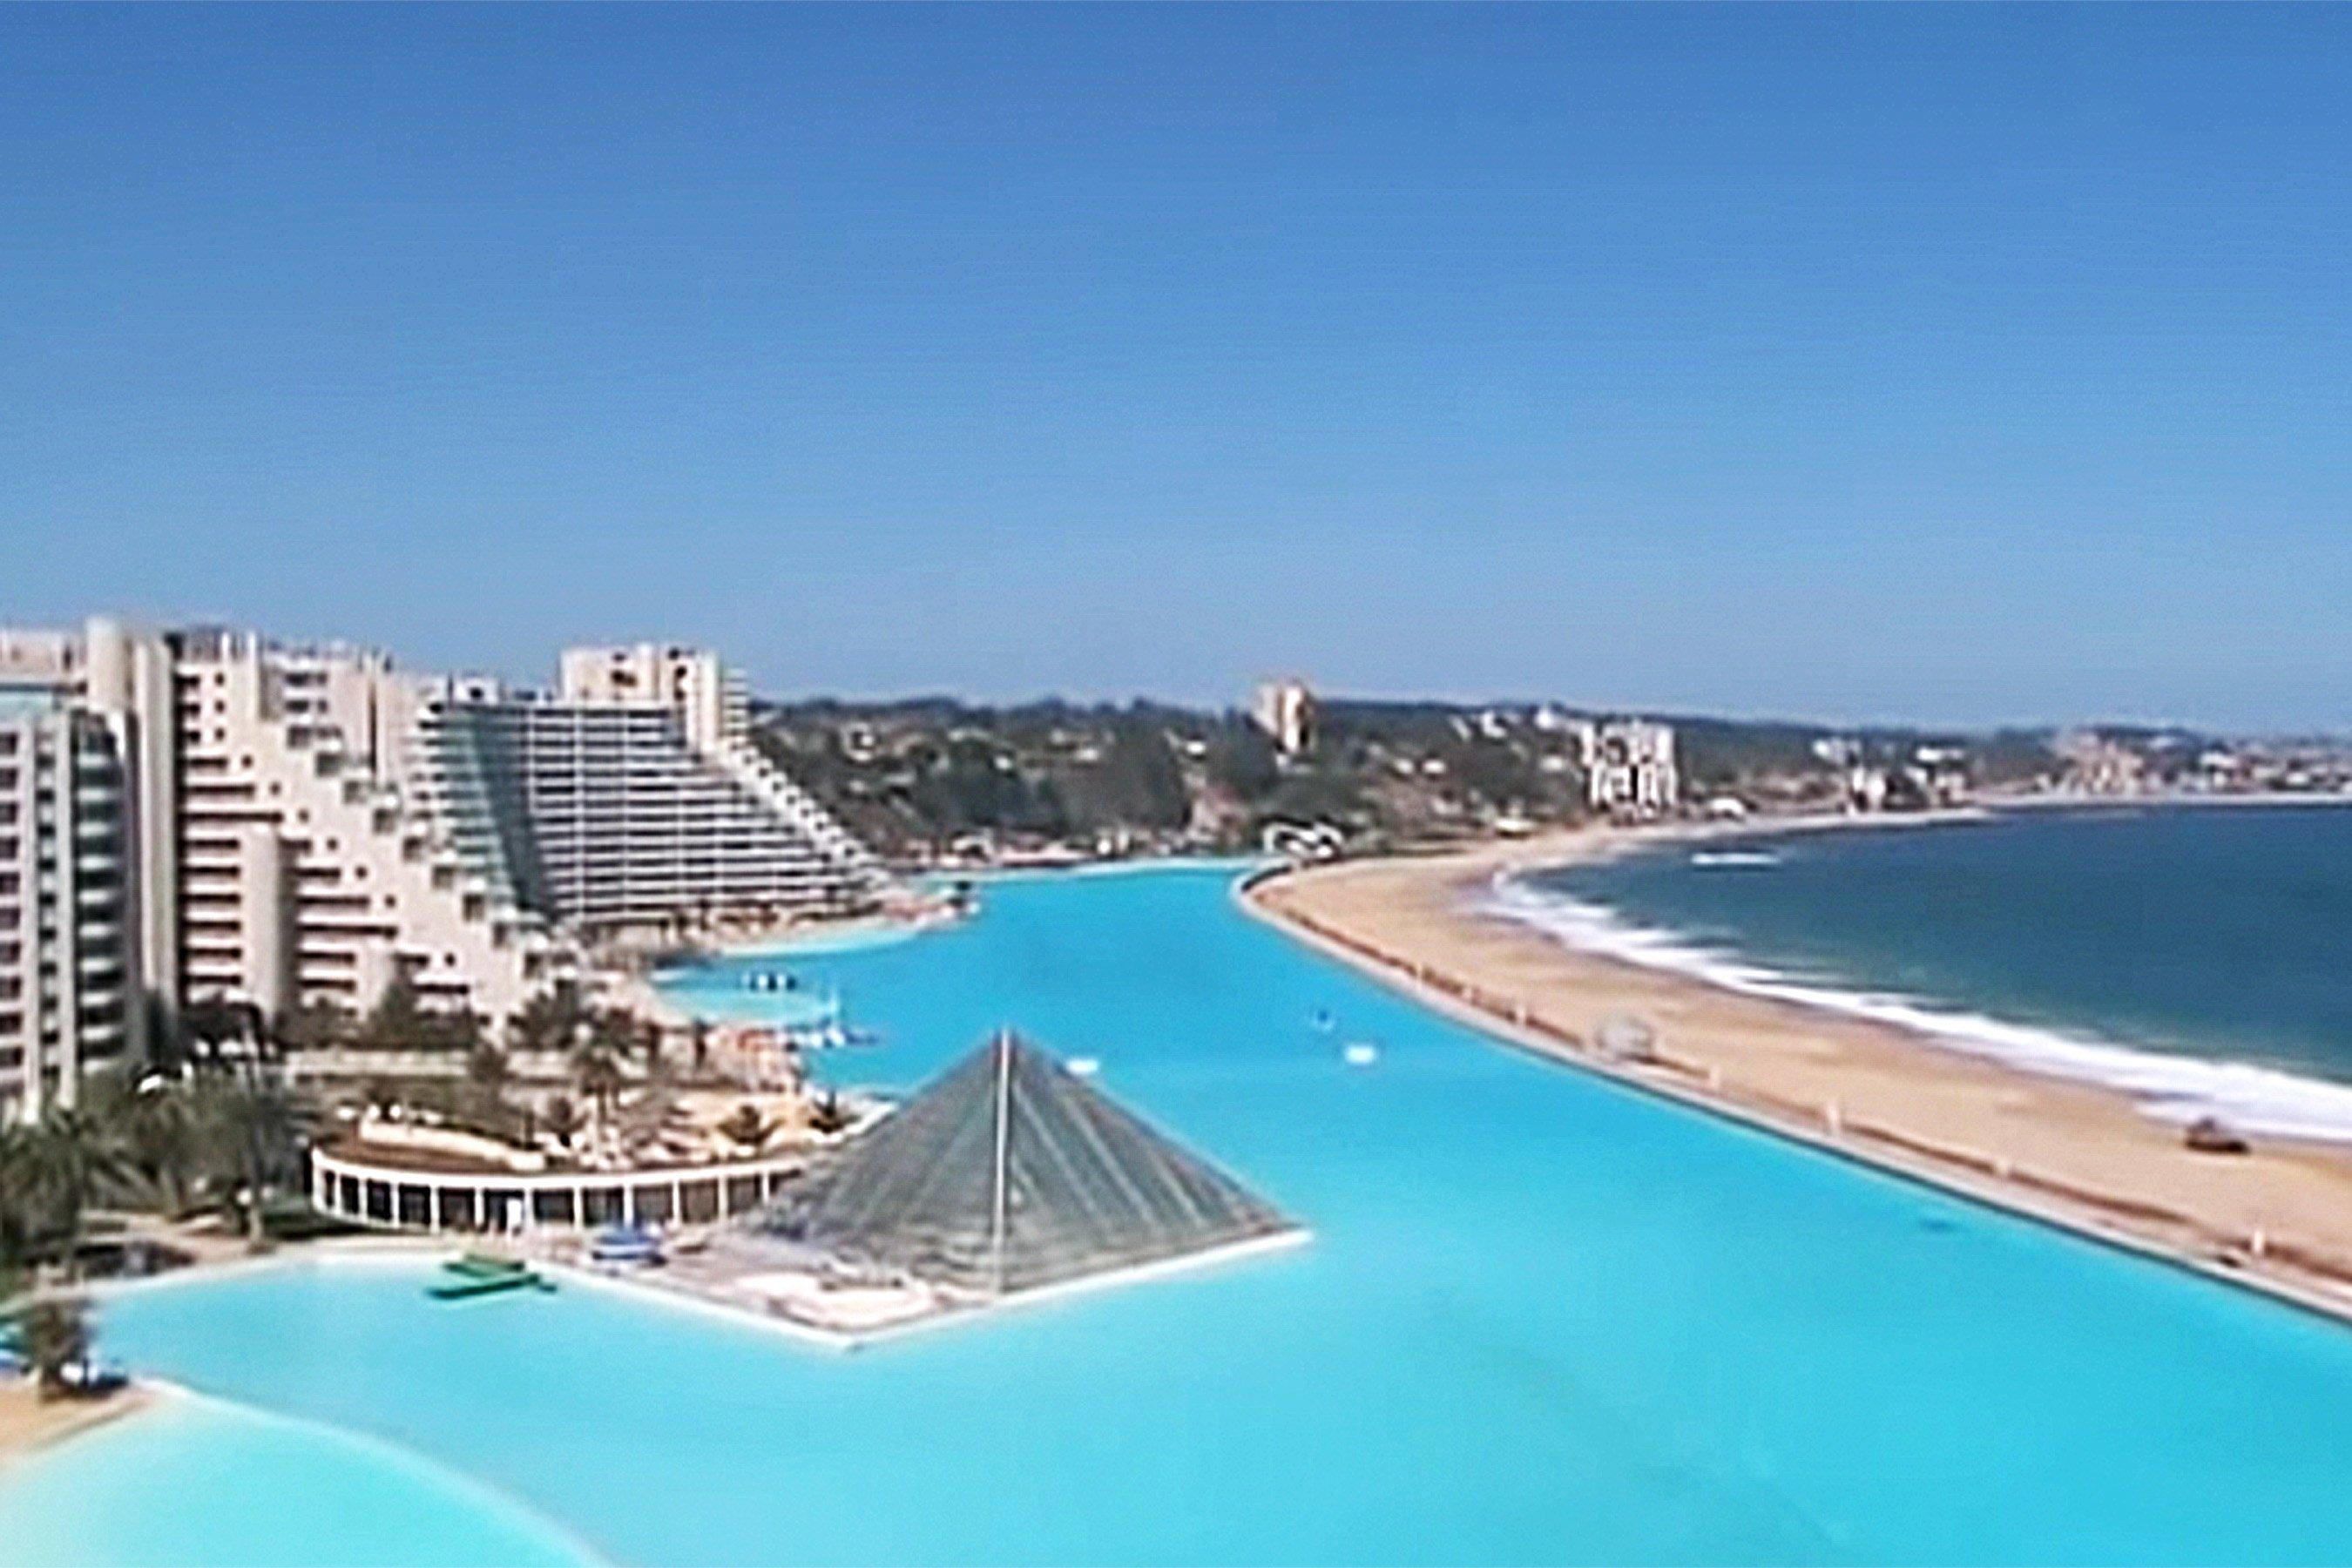 The World\'s Largest Swimming Pool Is So Insanely Huge, You ...